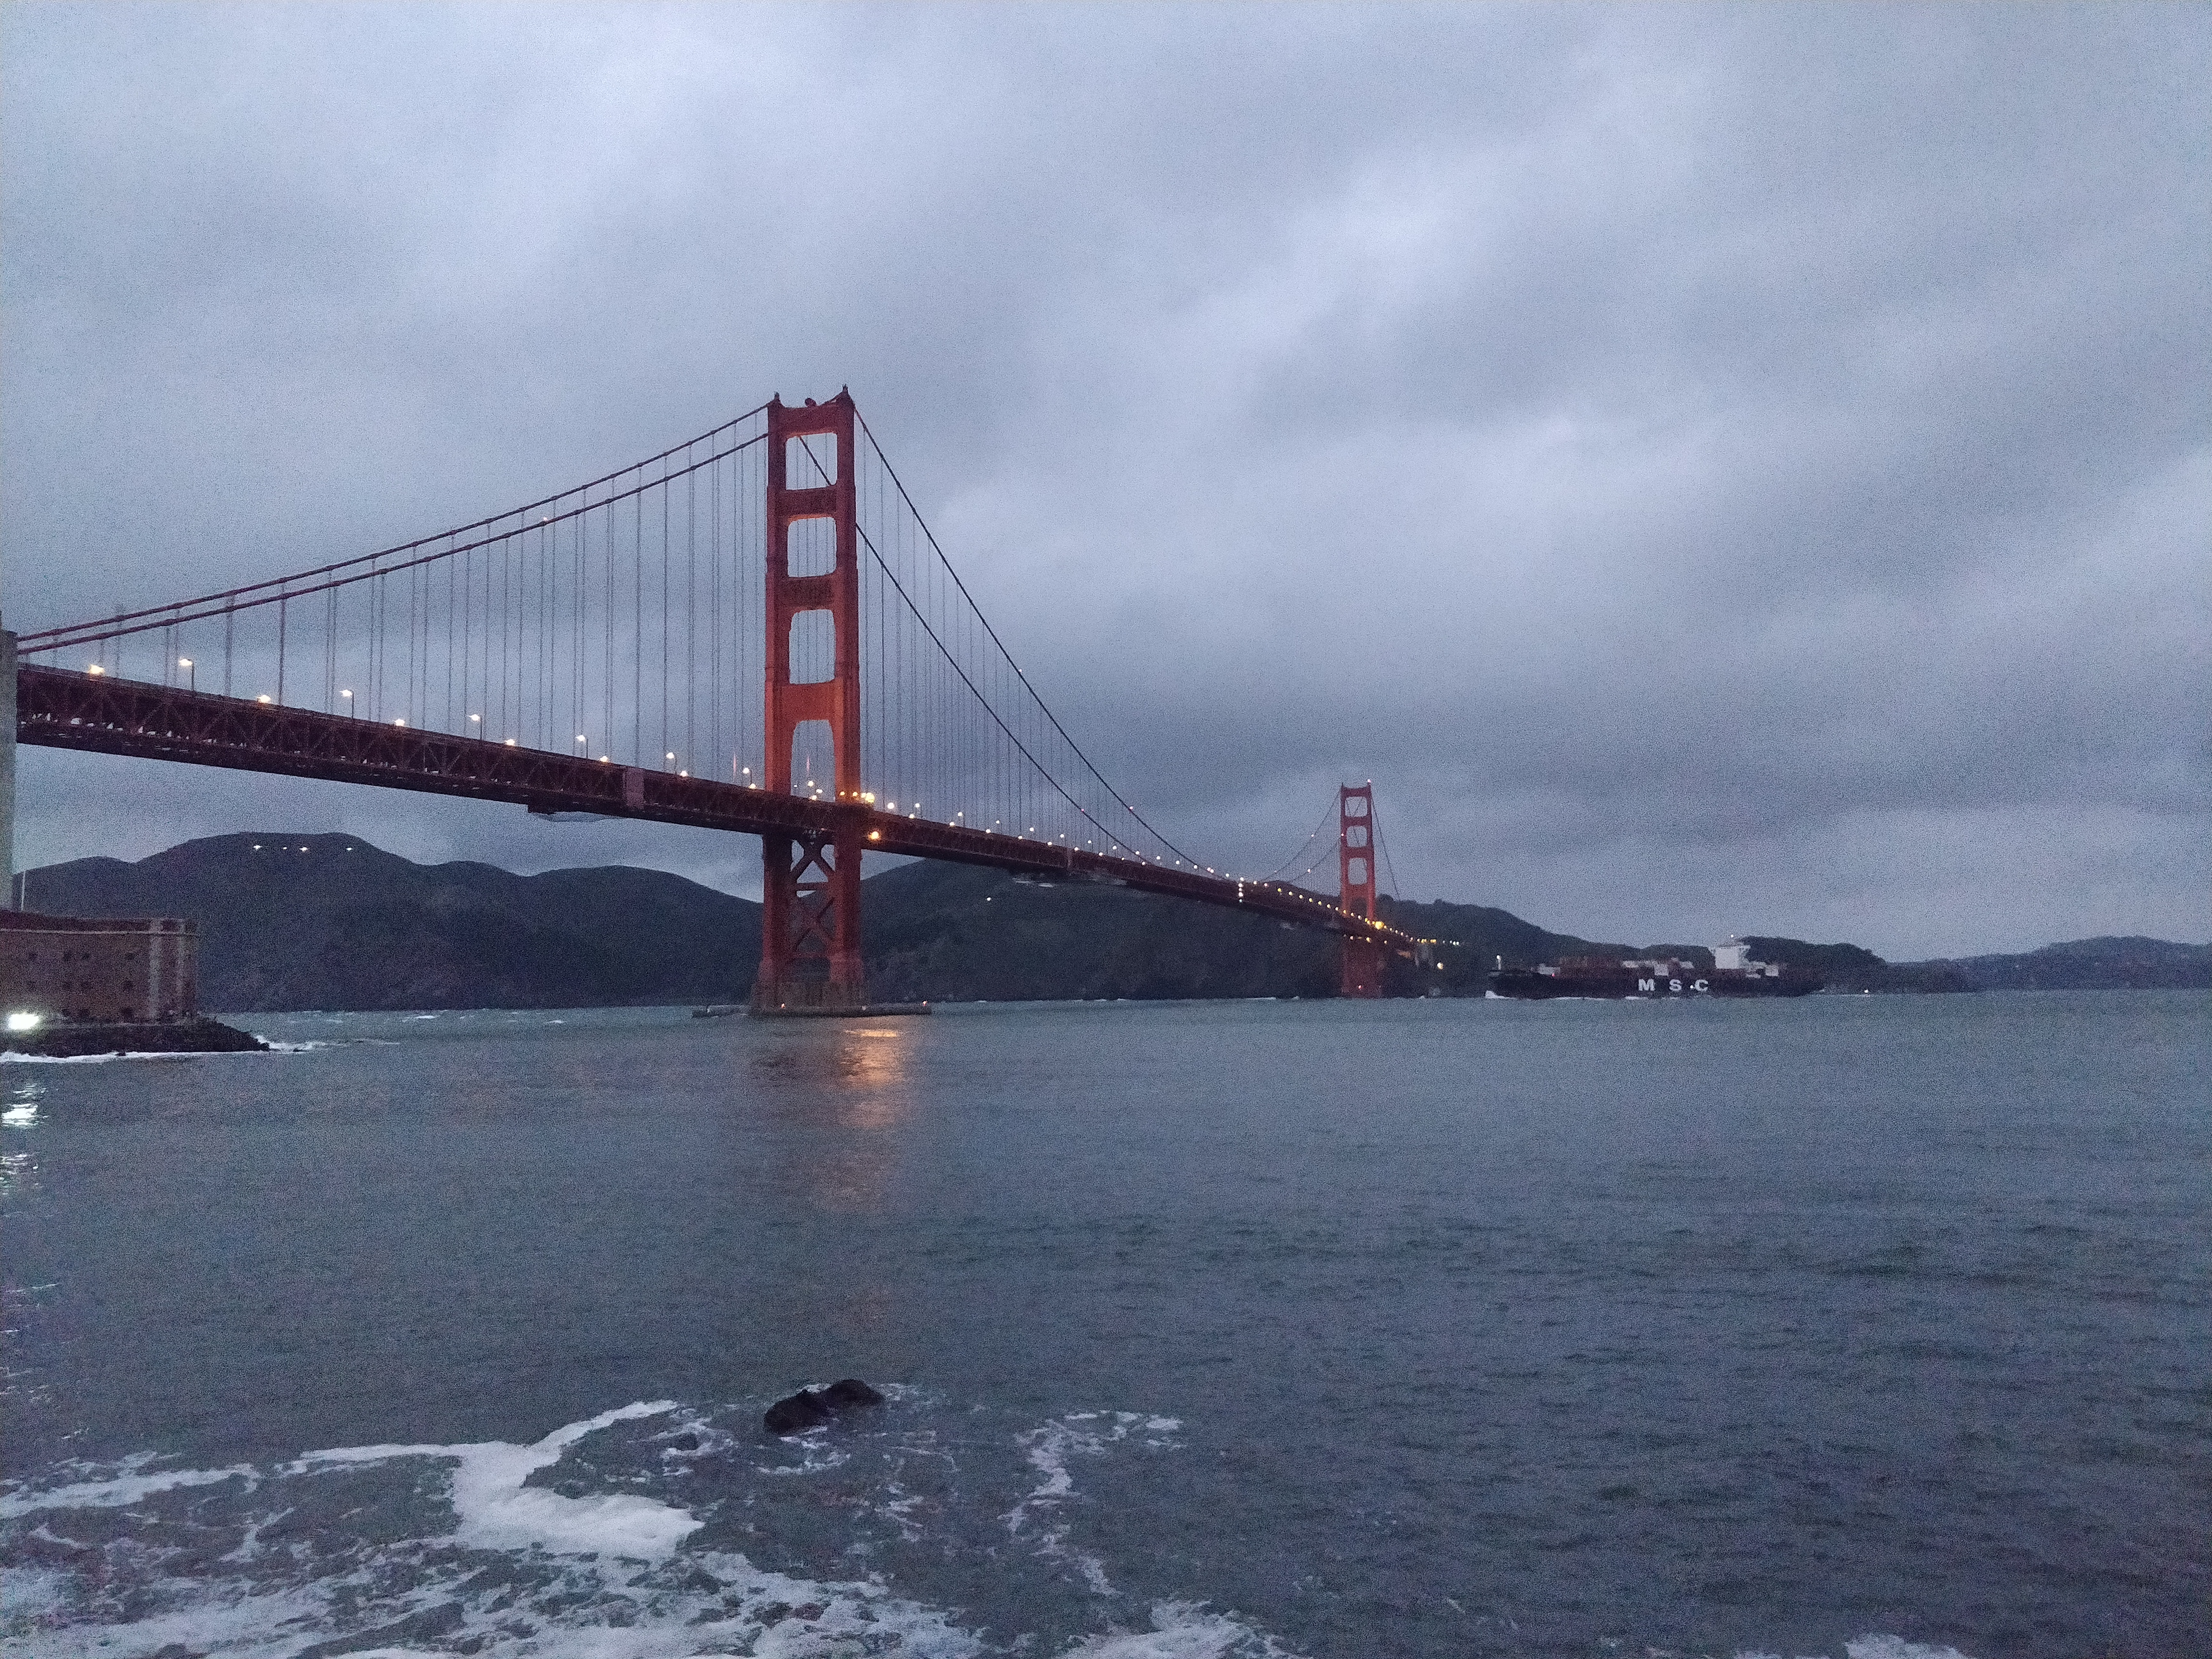 Cliche picture of the golden gate bridge